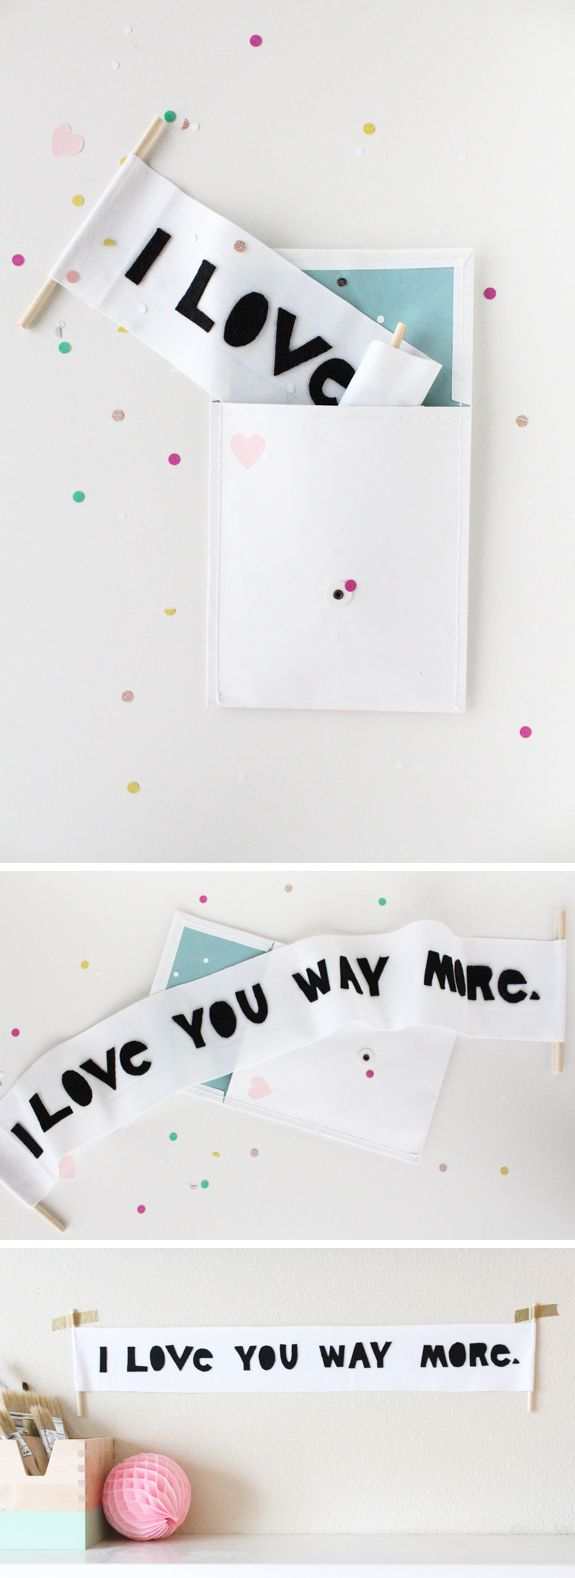 DIY Love Letter Scroll | say yes to hoboken